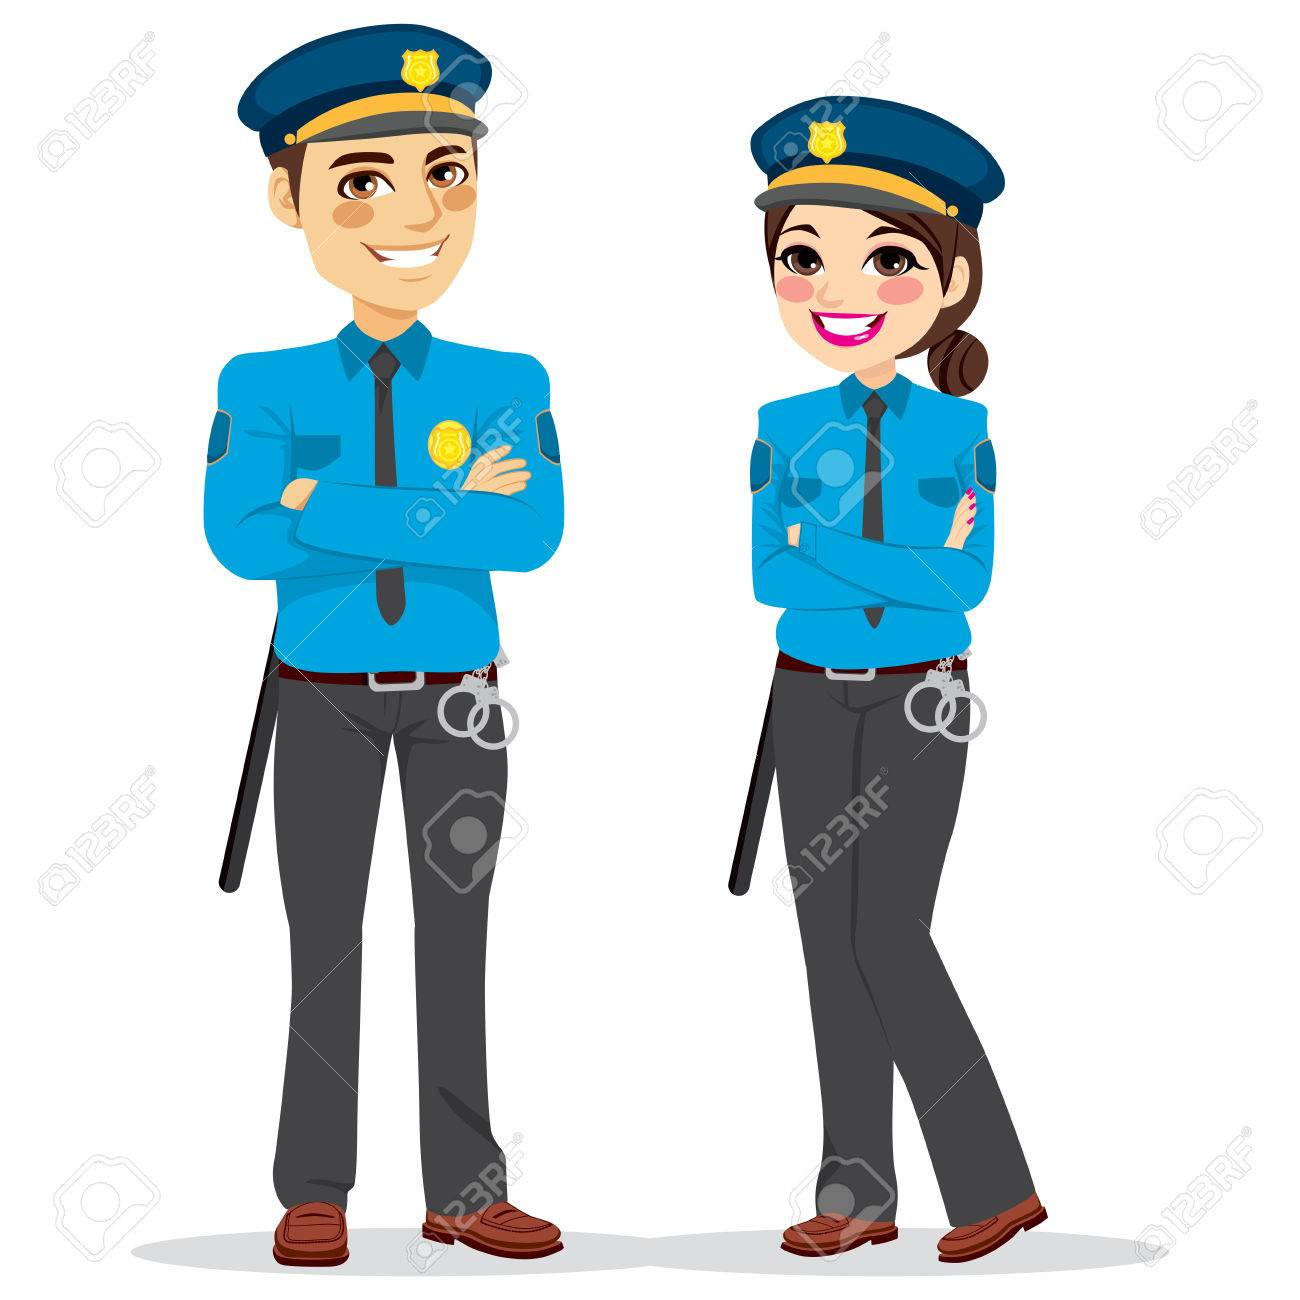 Young female and male police officers standing isolated on white background - 63072567